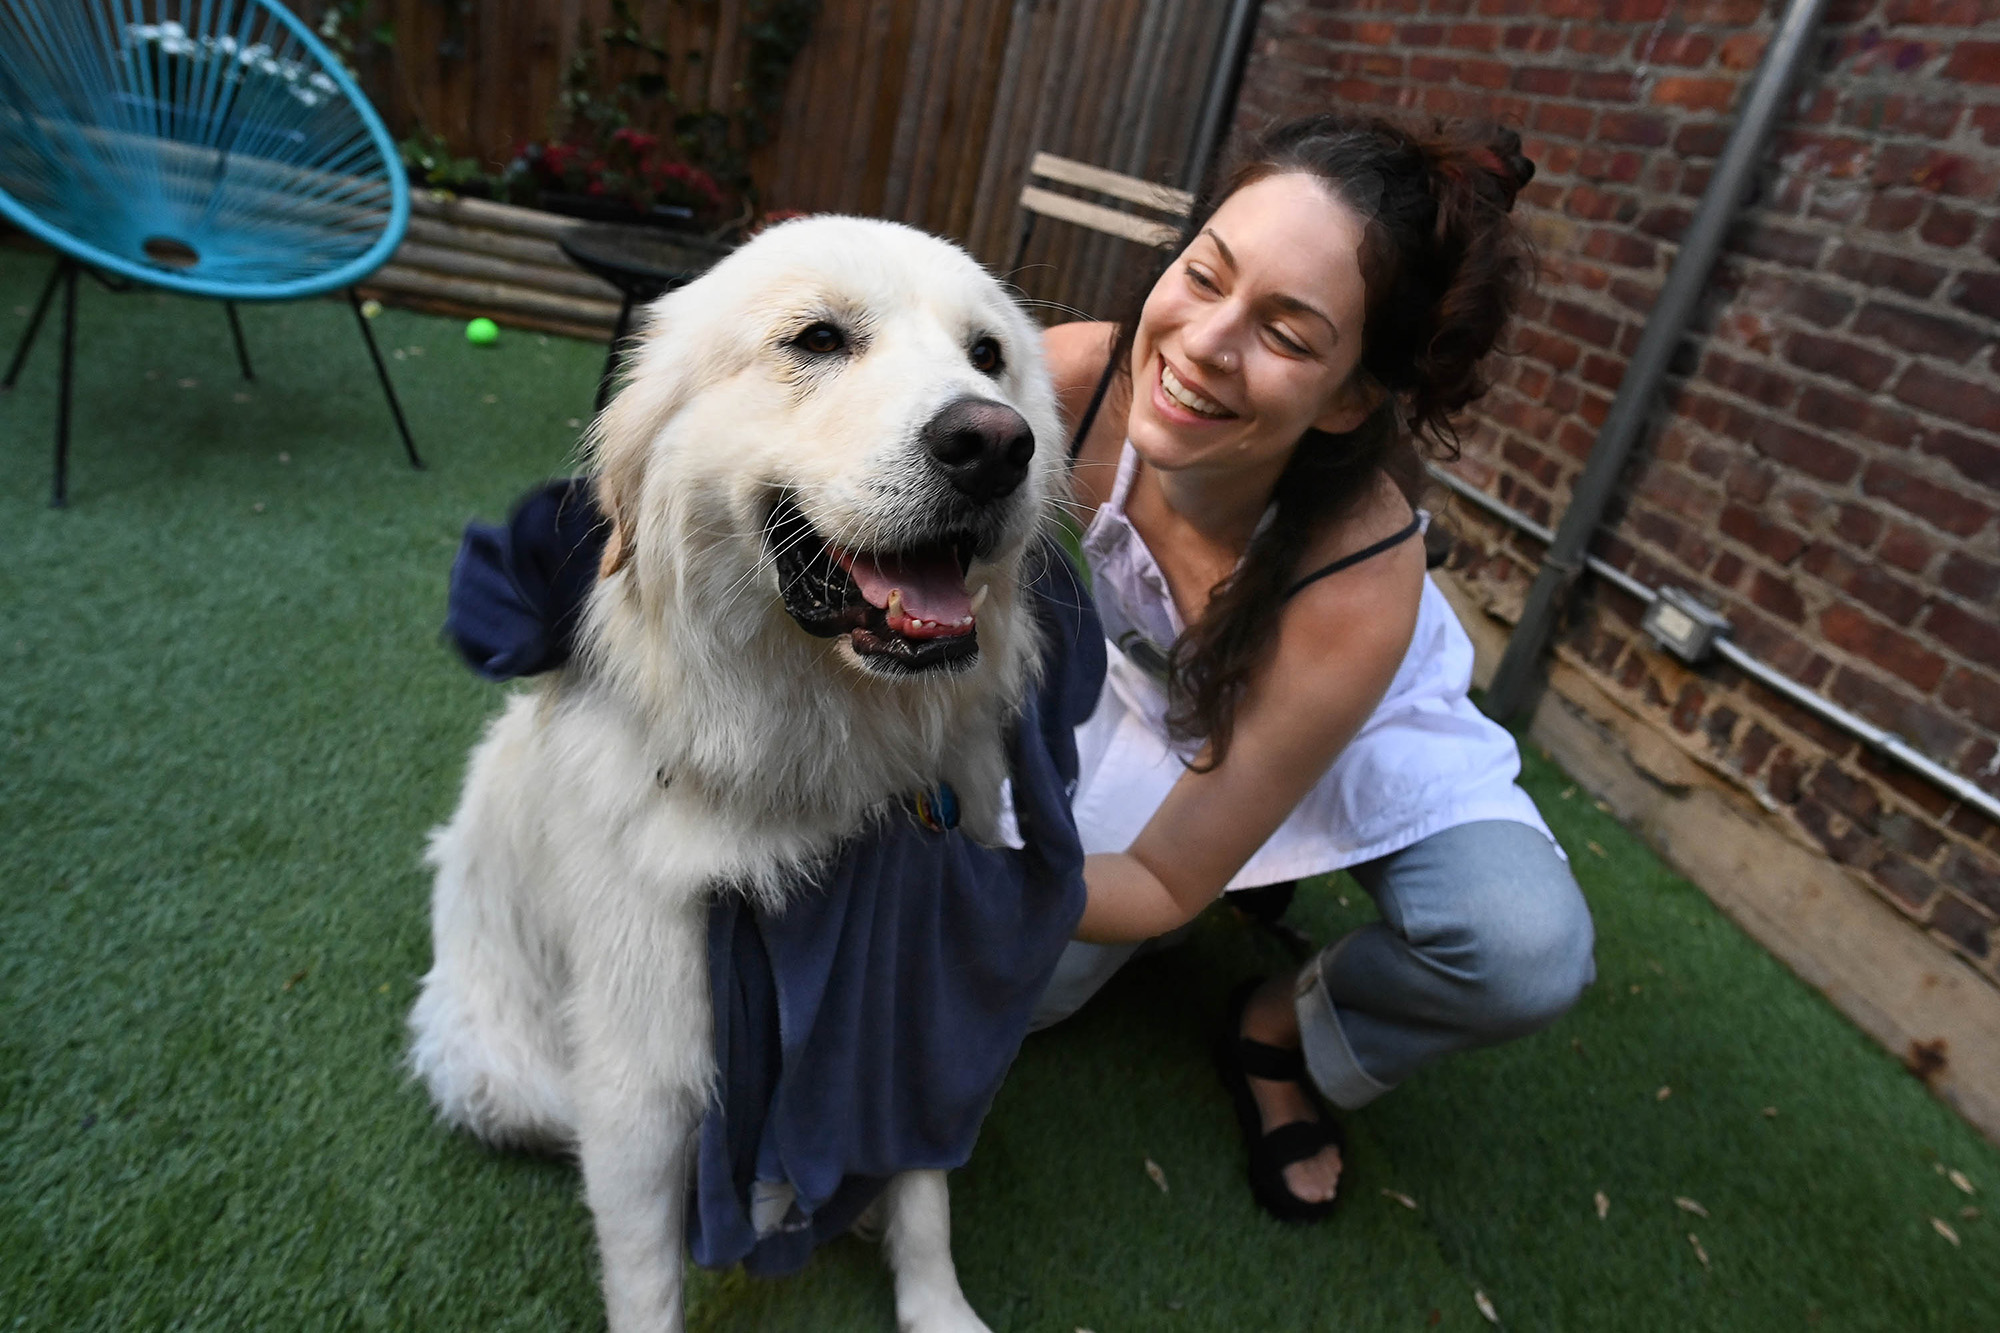 Kris Chan, Butters' owner, comes from Fort Greene to wash Butters at this first self-service dog wash spa and boutique.